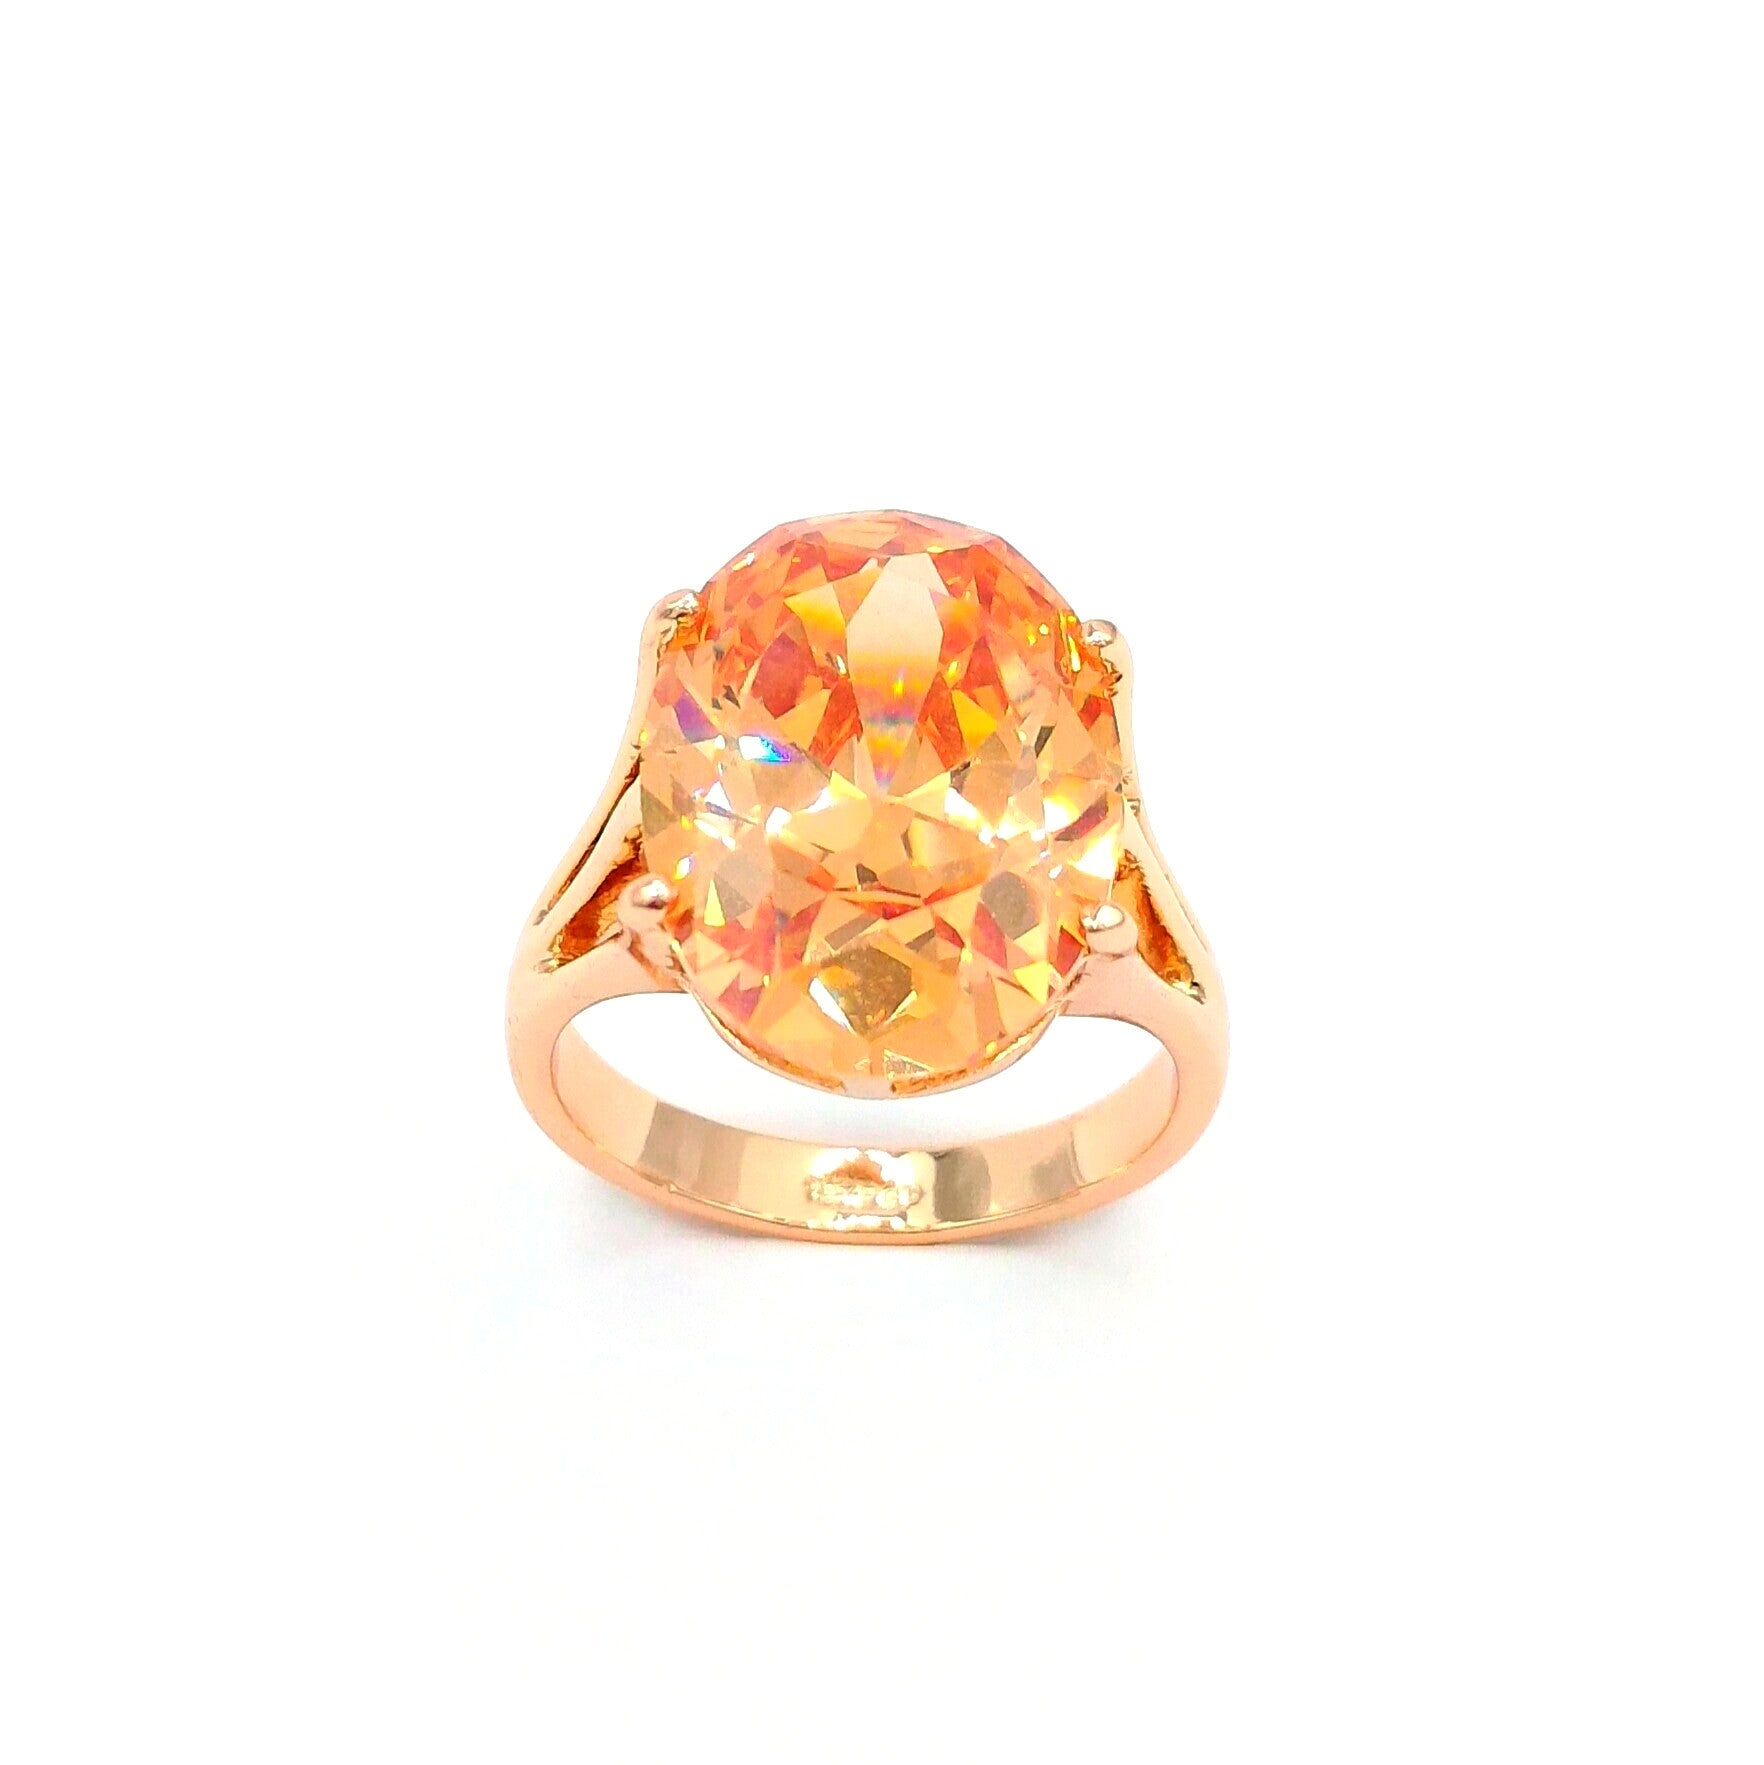 rings ring engagement dainty jewellery beauty products baltic amber